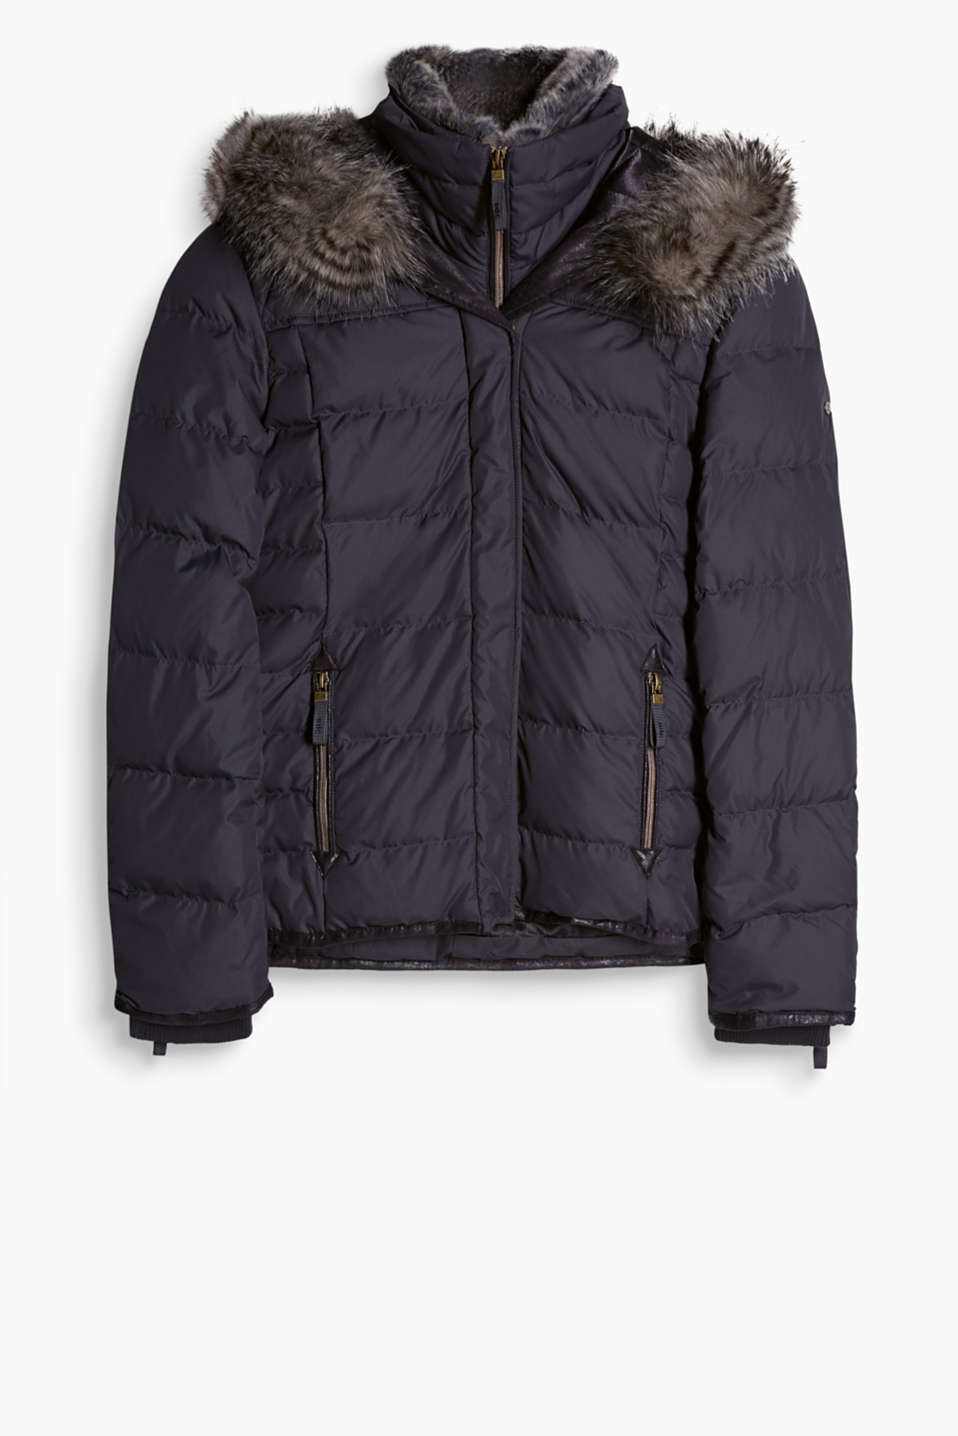 Sporty quilted jacket with high-performance details and premium down/feather filling